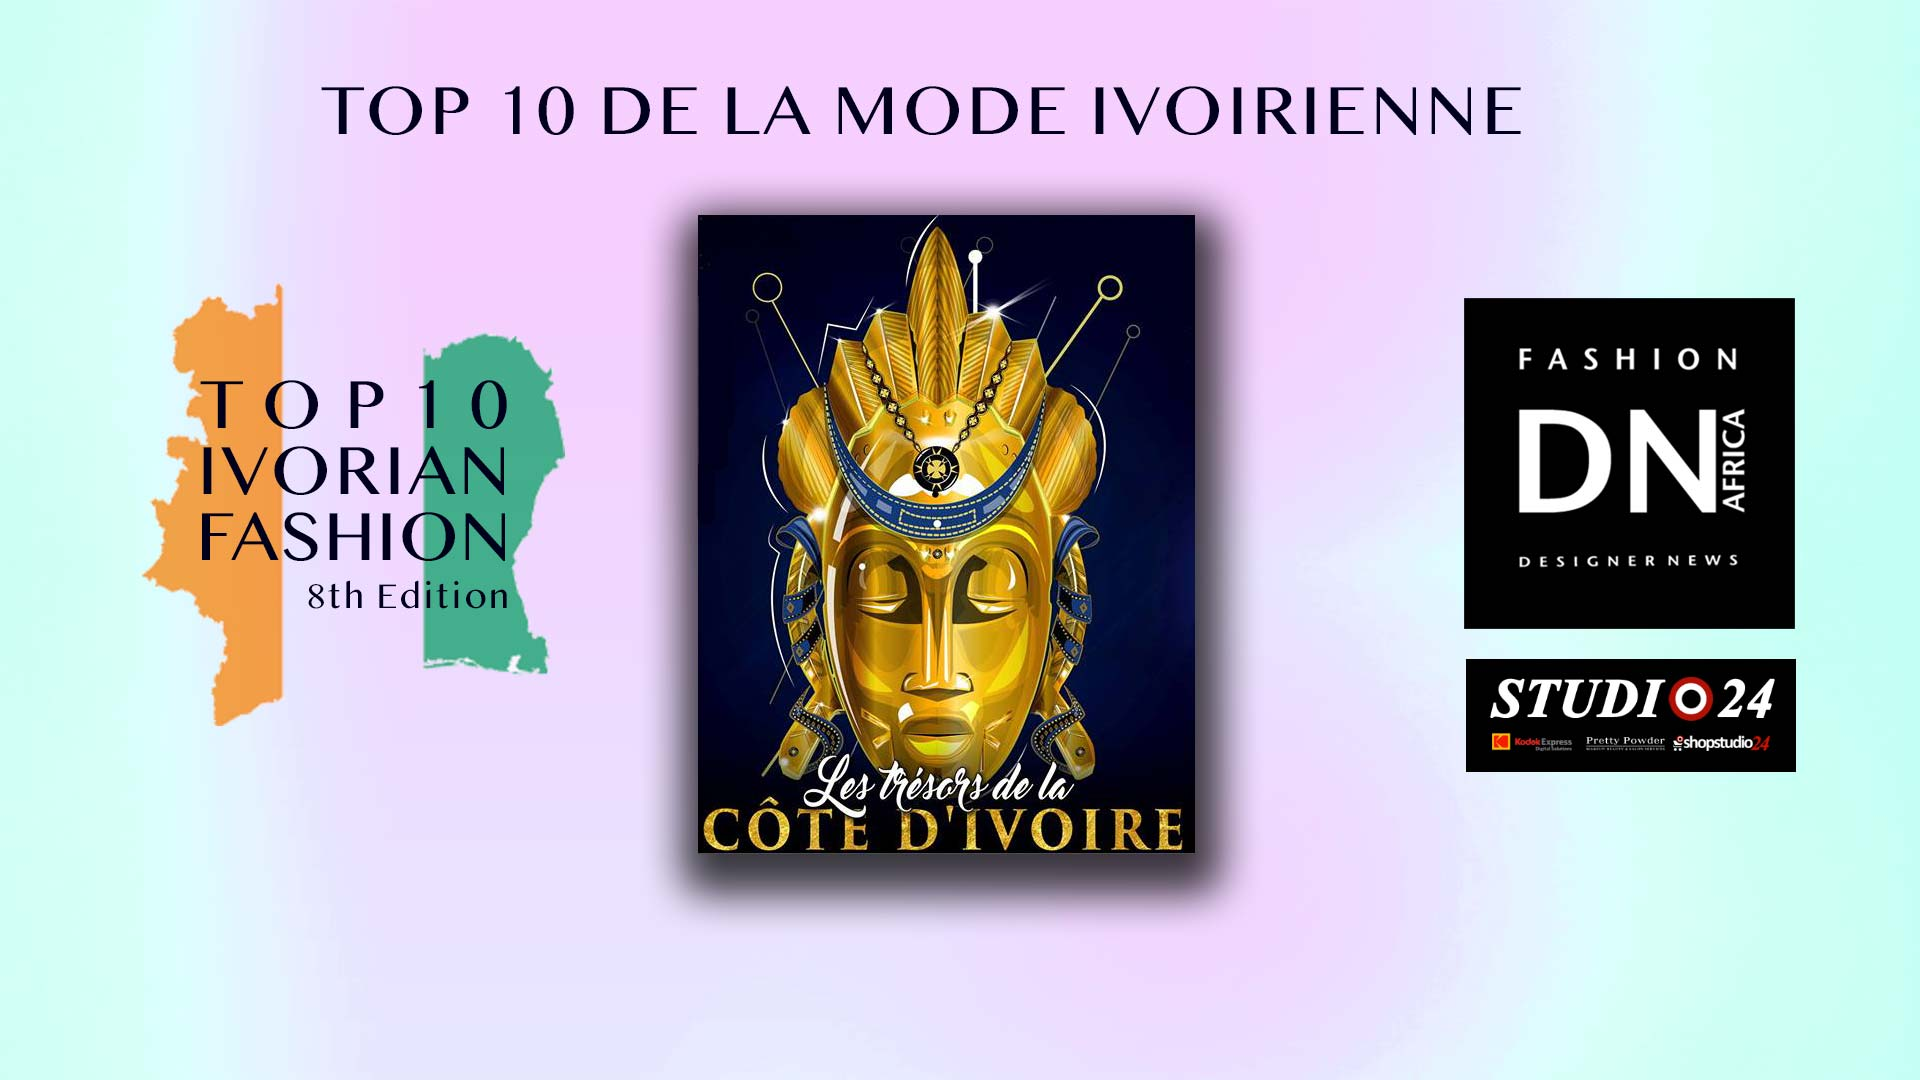 DN-AFRICA-Fashion-Magazine-Top-10-ivorian-fashion-mode-ivoirienne